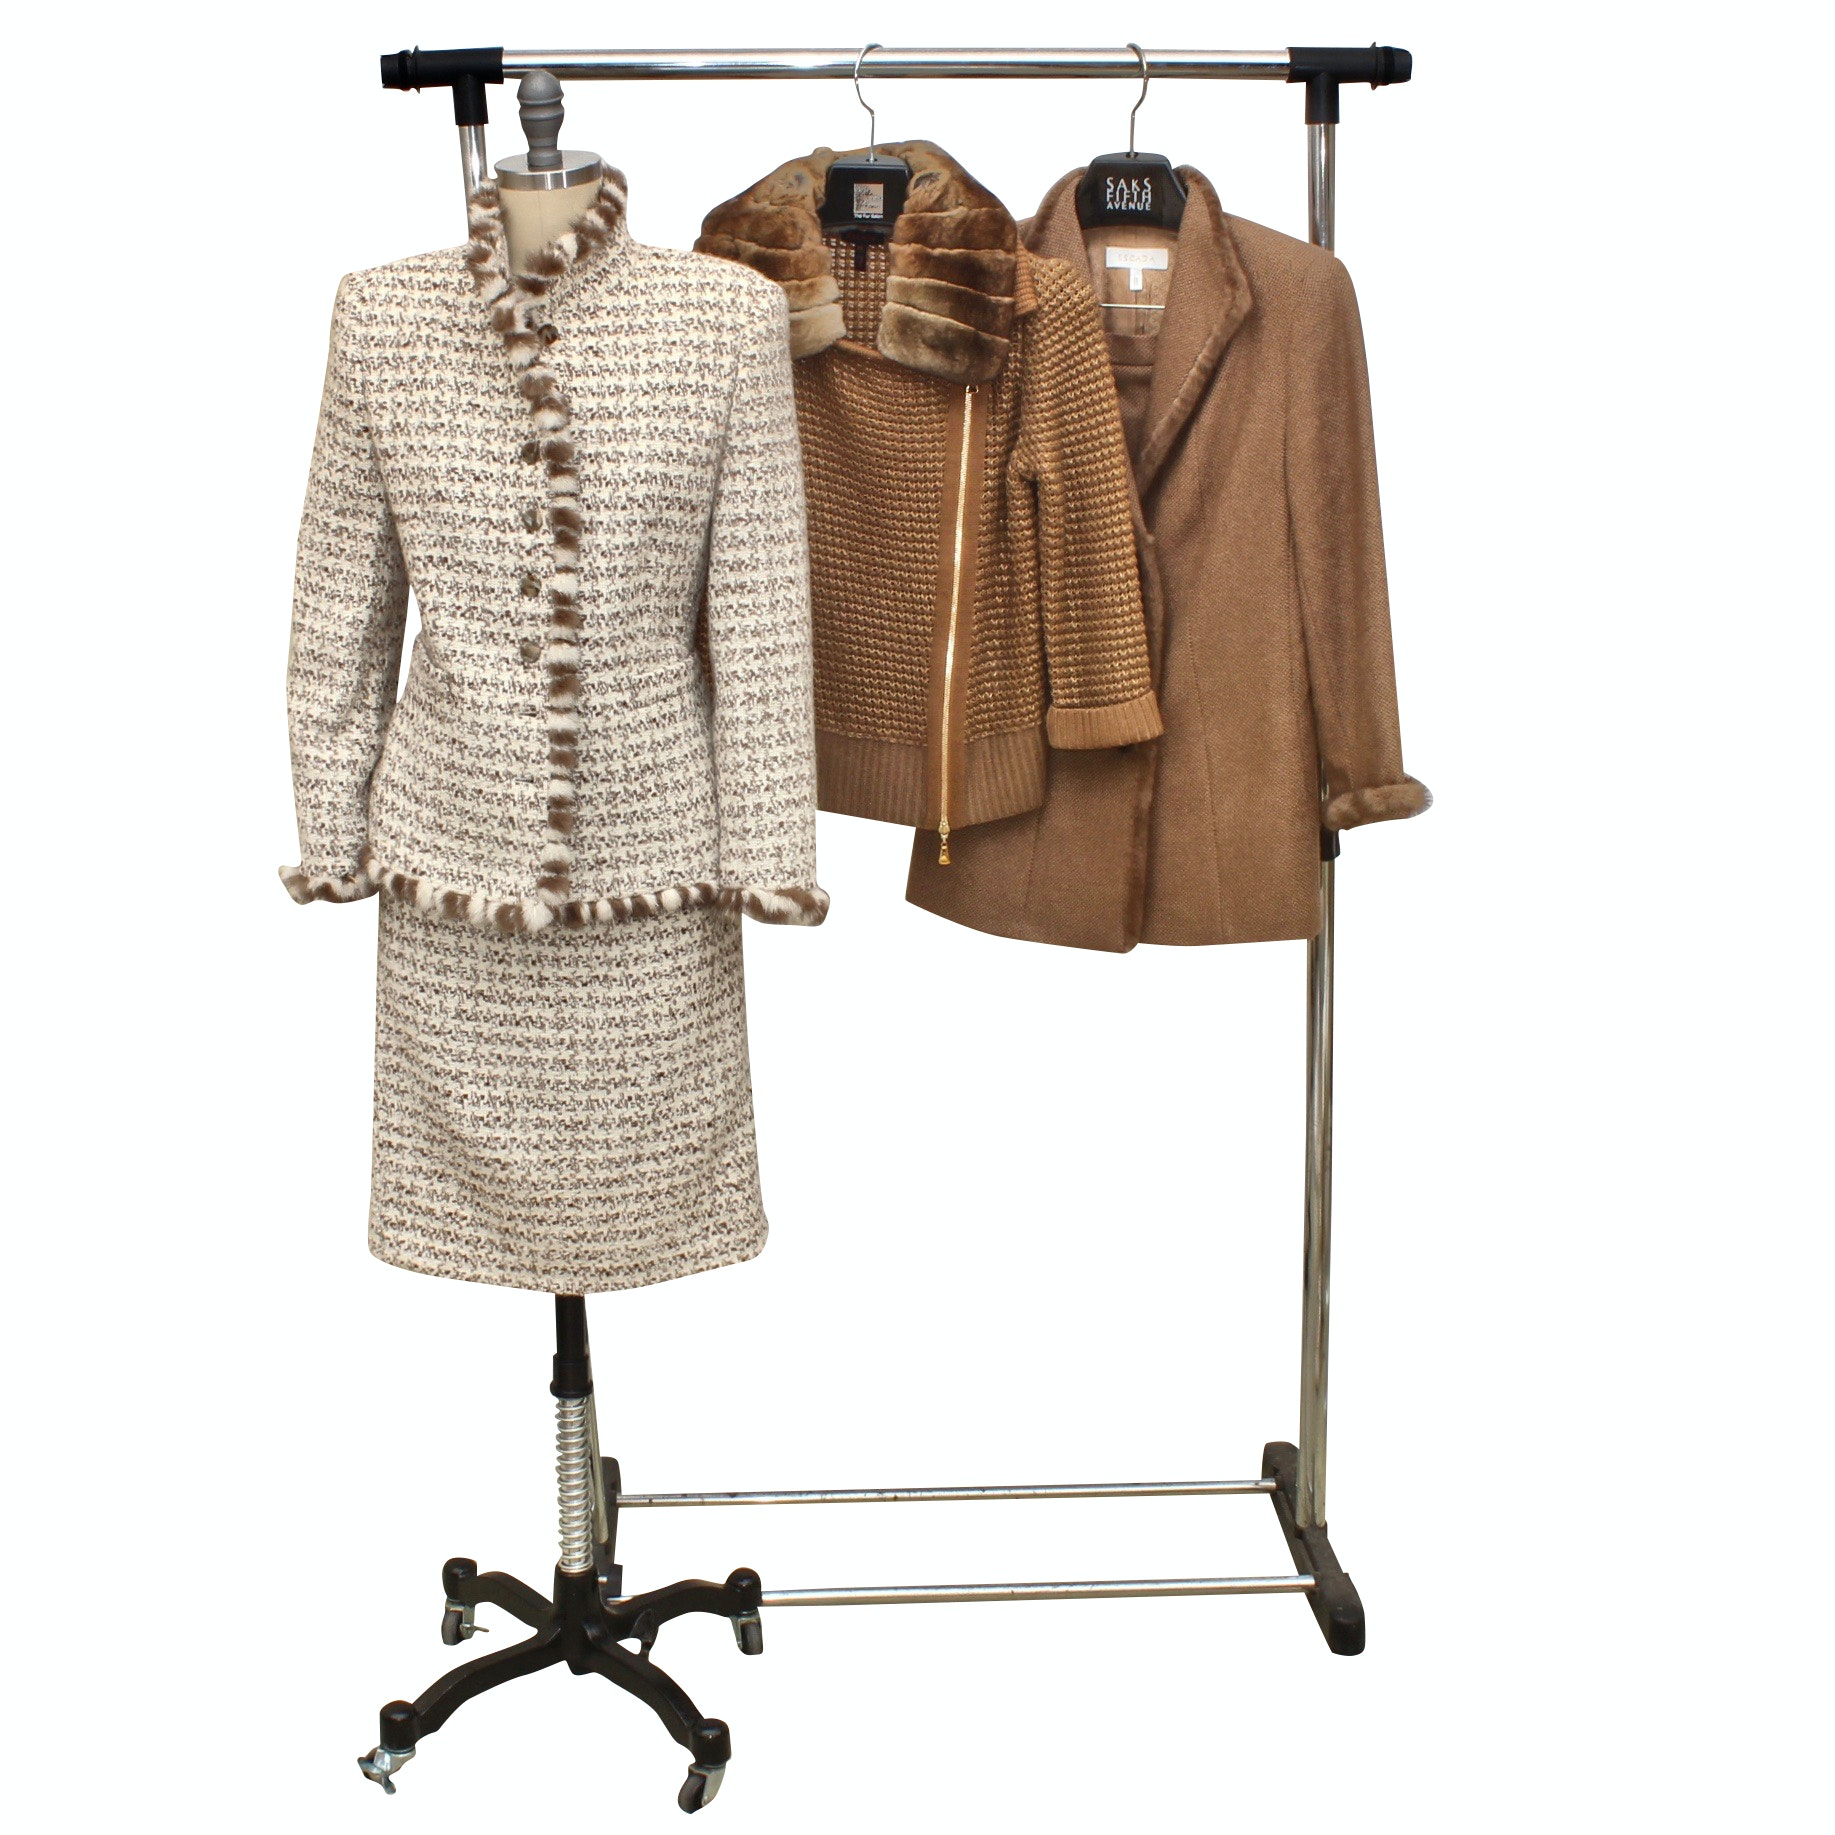 Escada Outerwear Including Camel, Rabbit, Llama, Mink, and Other Furs